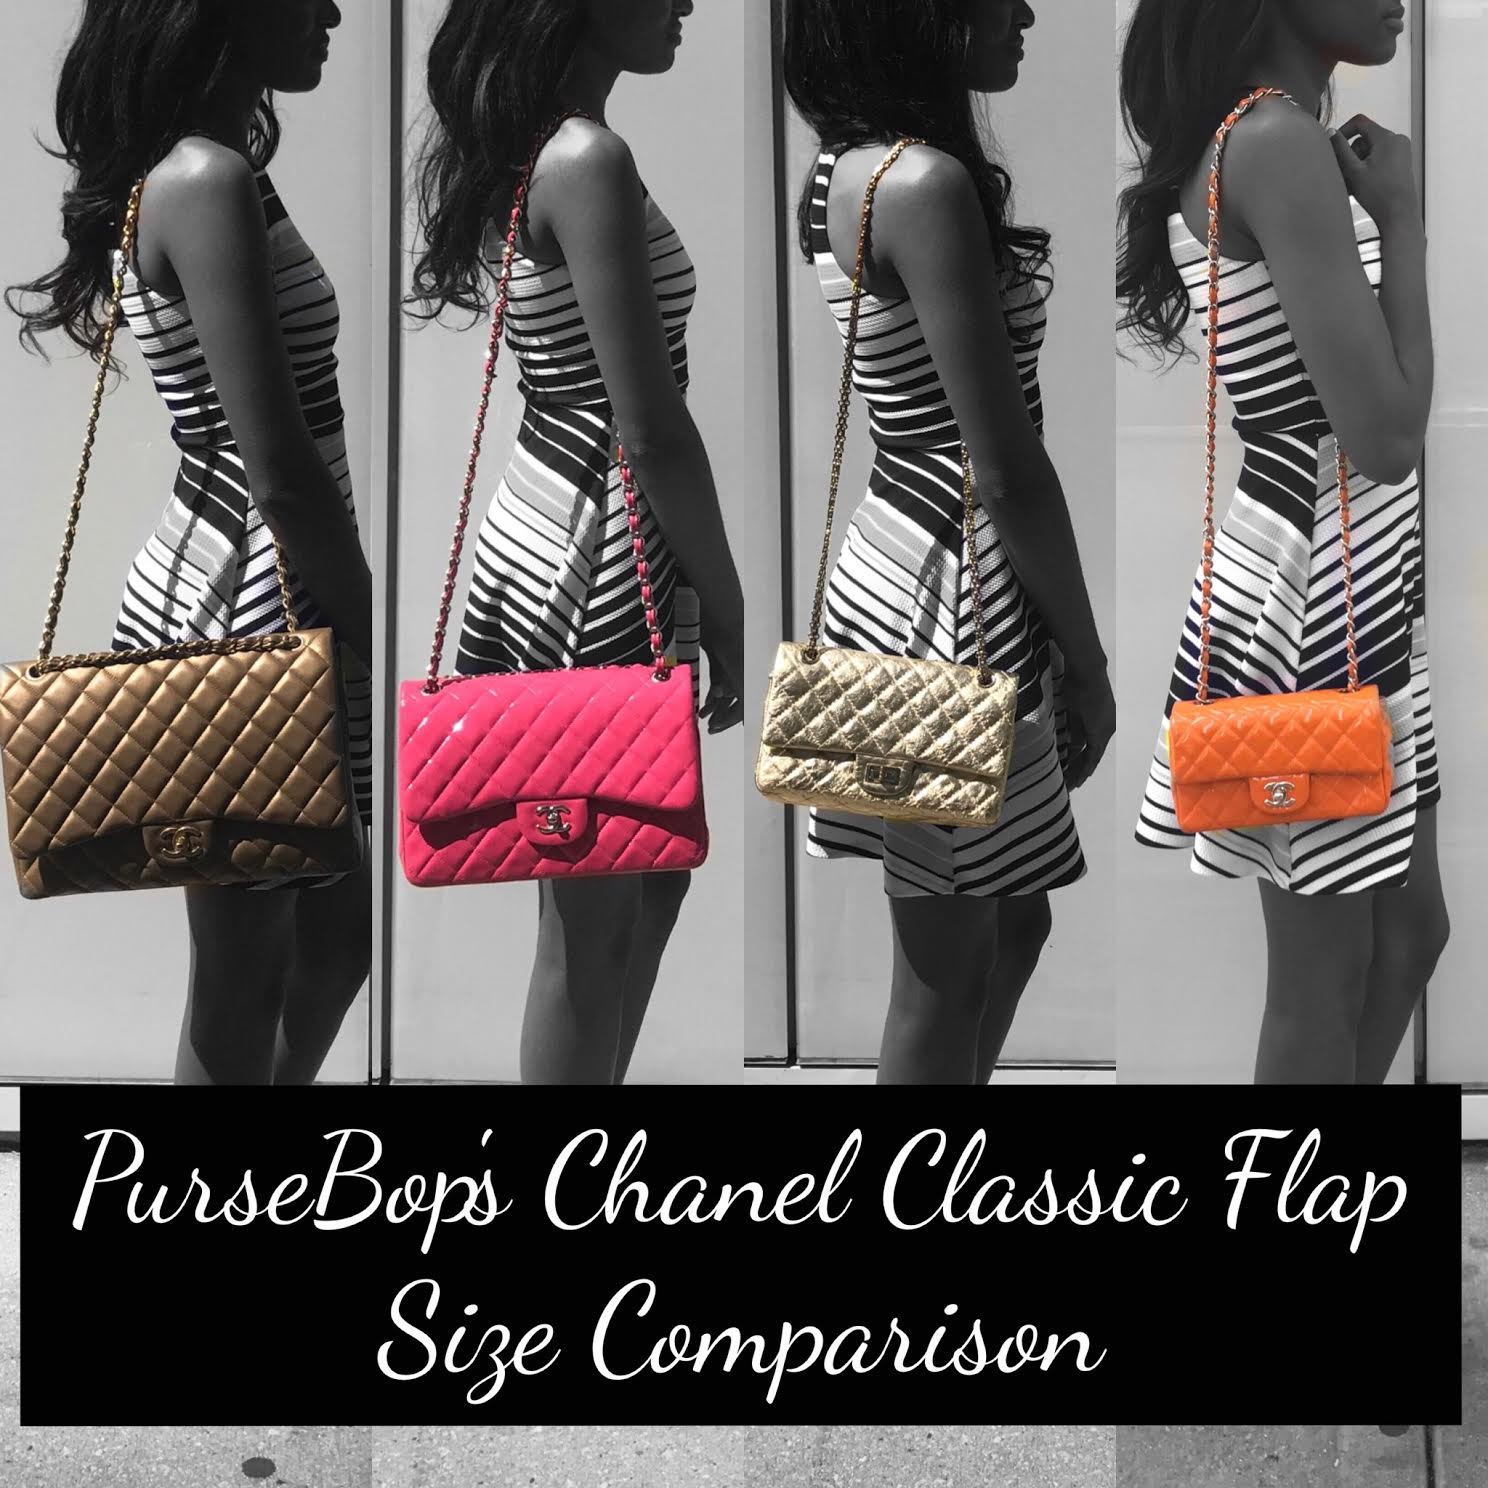 Chanel Classic Flap Size Comparison - PurseBop